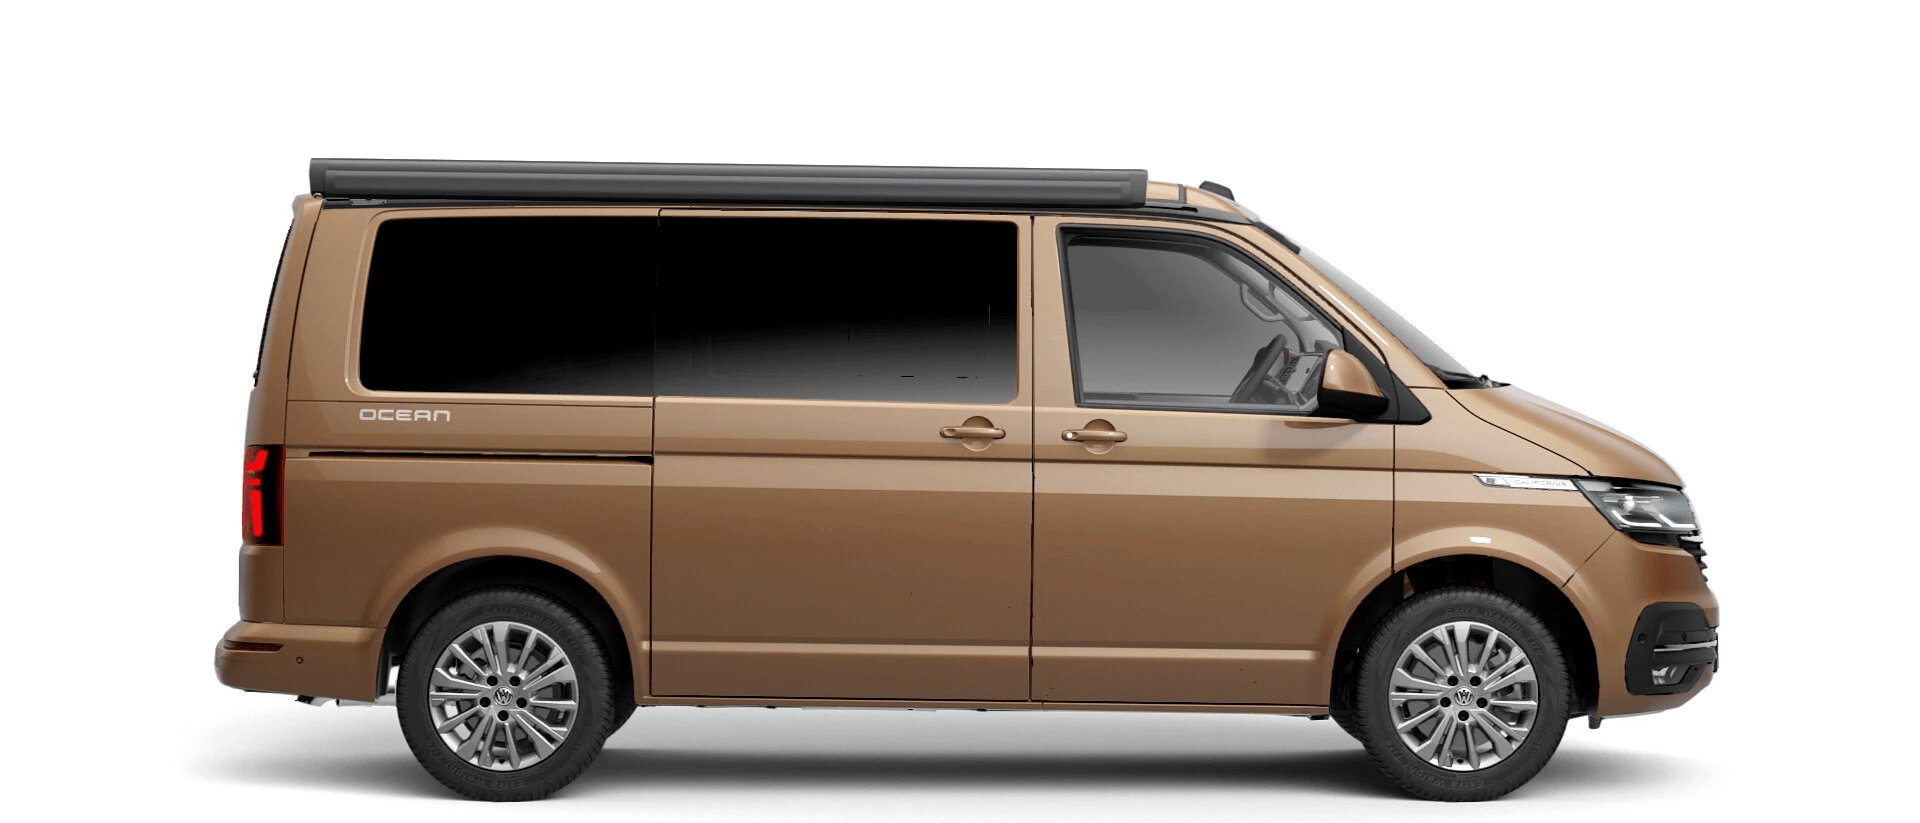 Volkswagen Van Range California - Available In Metallic Copper Bronze